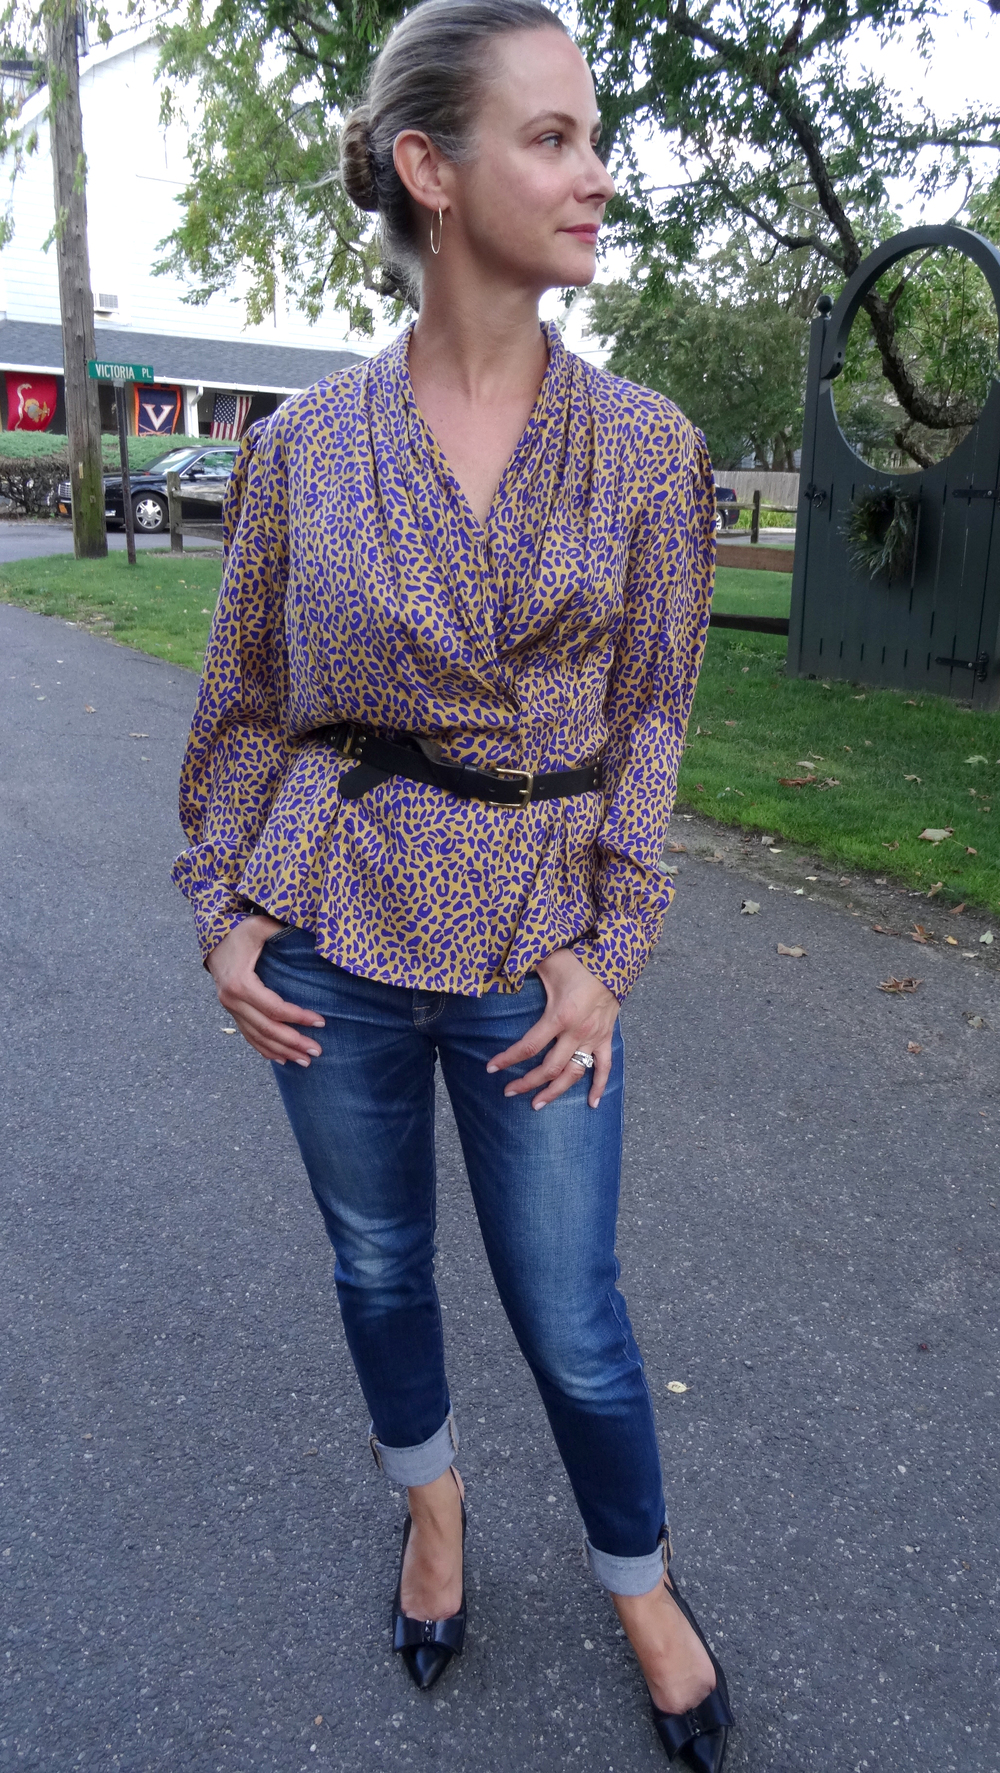 Vintage purple and gold leopard top.